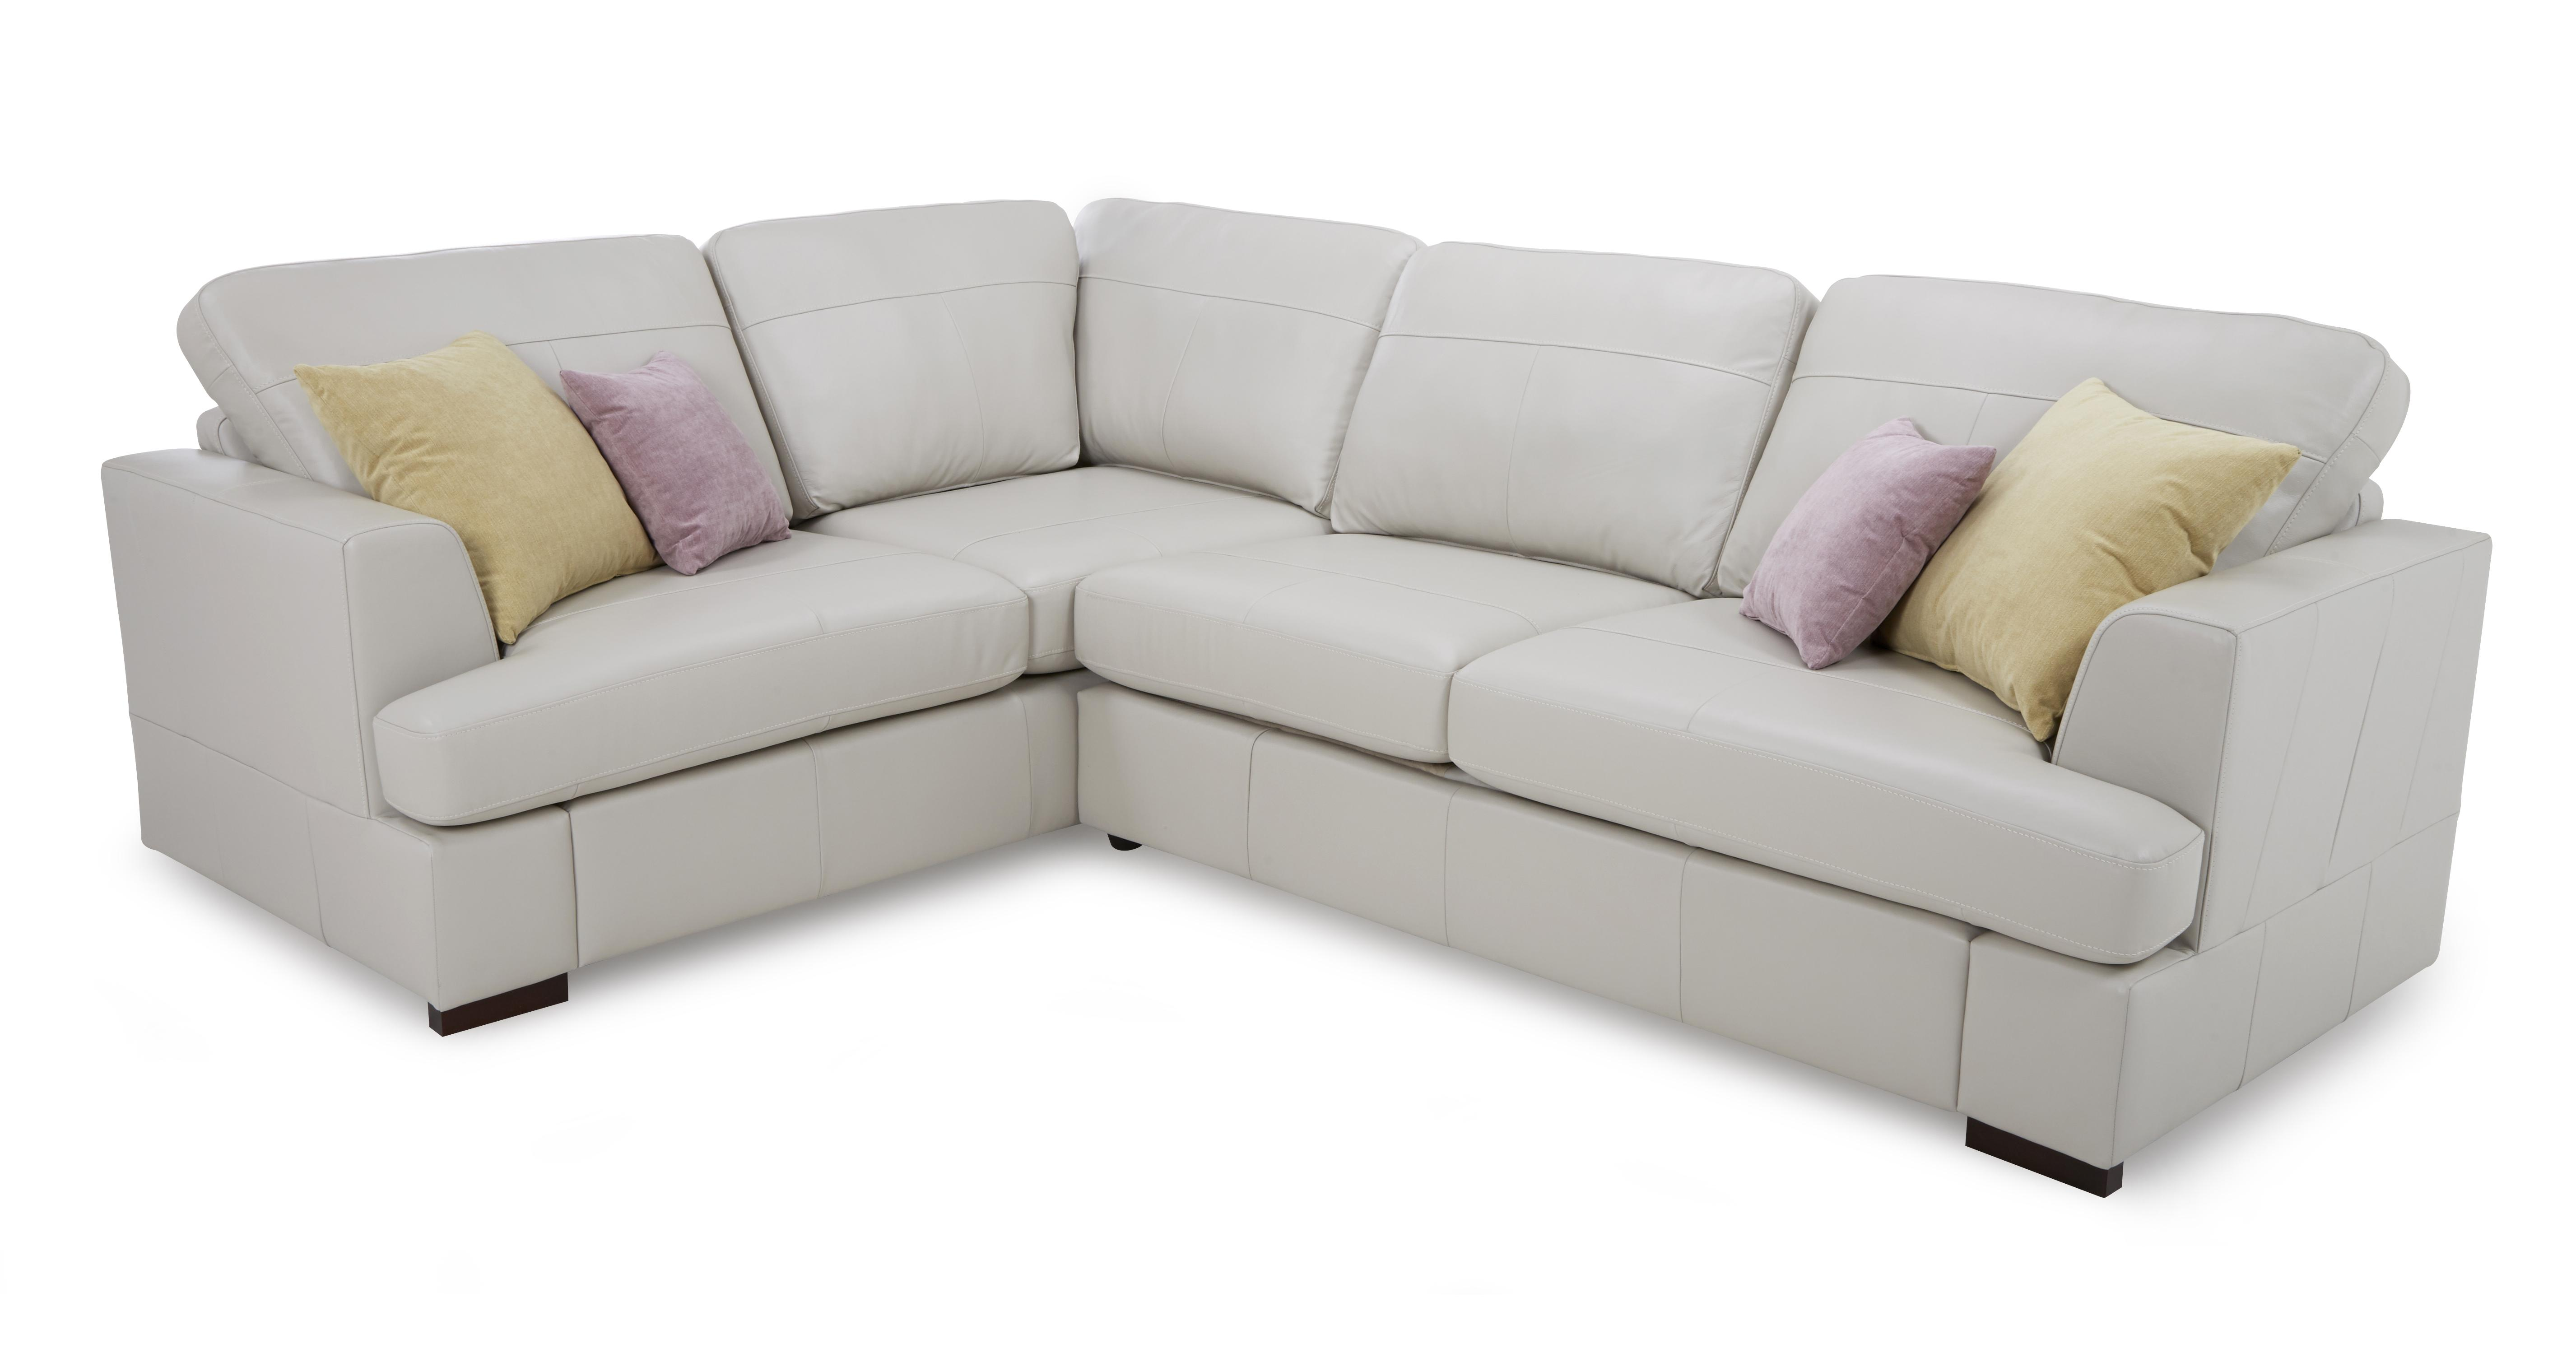 leather corner sofa beds ireland king sofas nz right hand facing brokeasshome